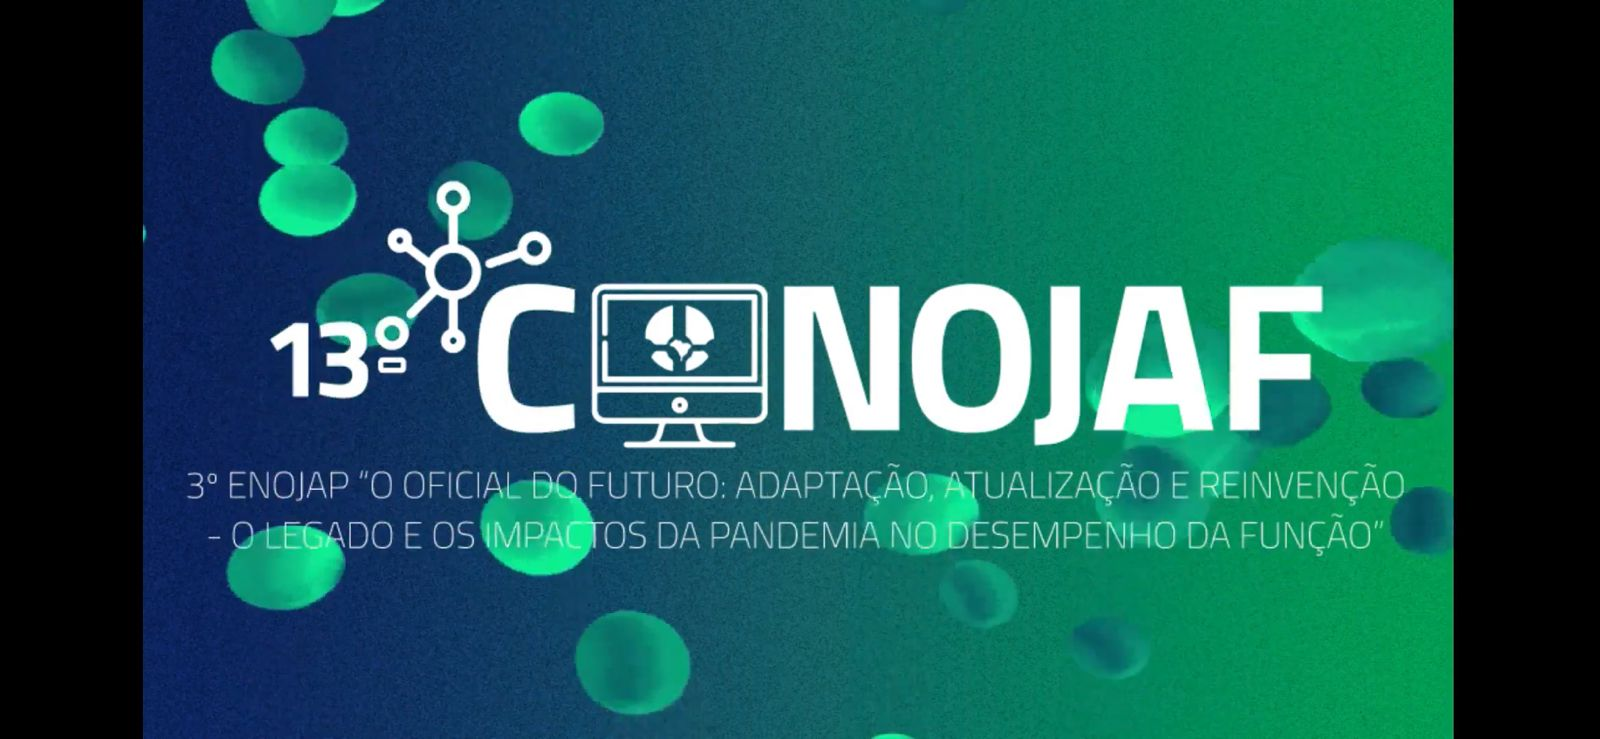 13th National Congress of Federal Judicial Officers of Brazil (CONOJAF)